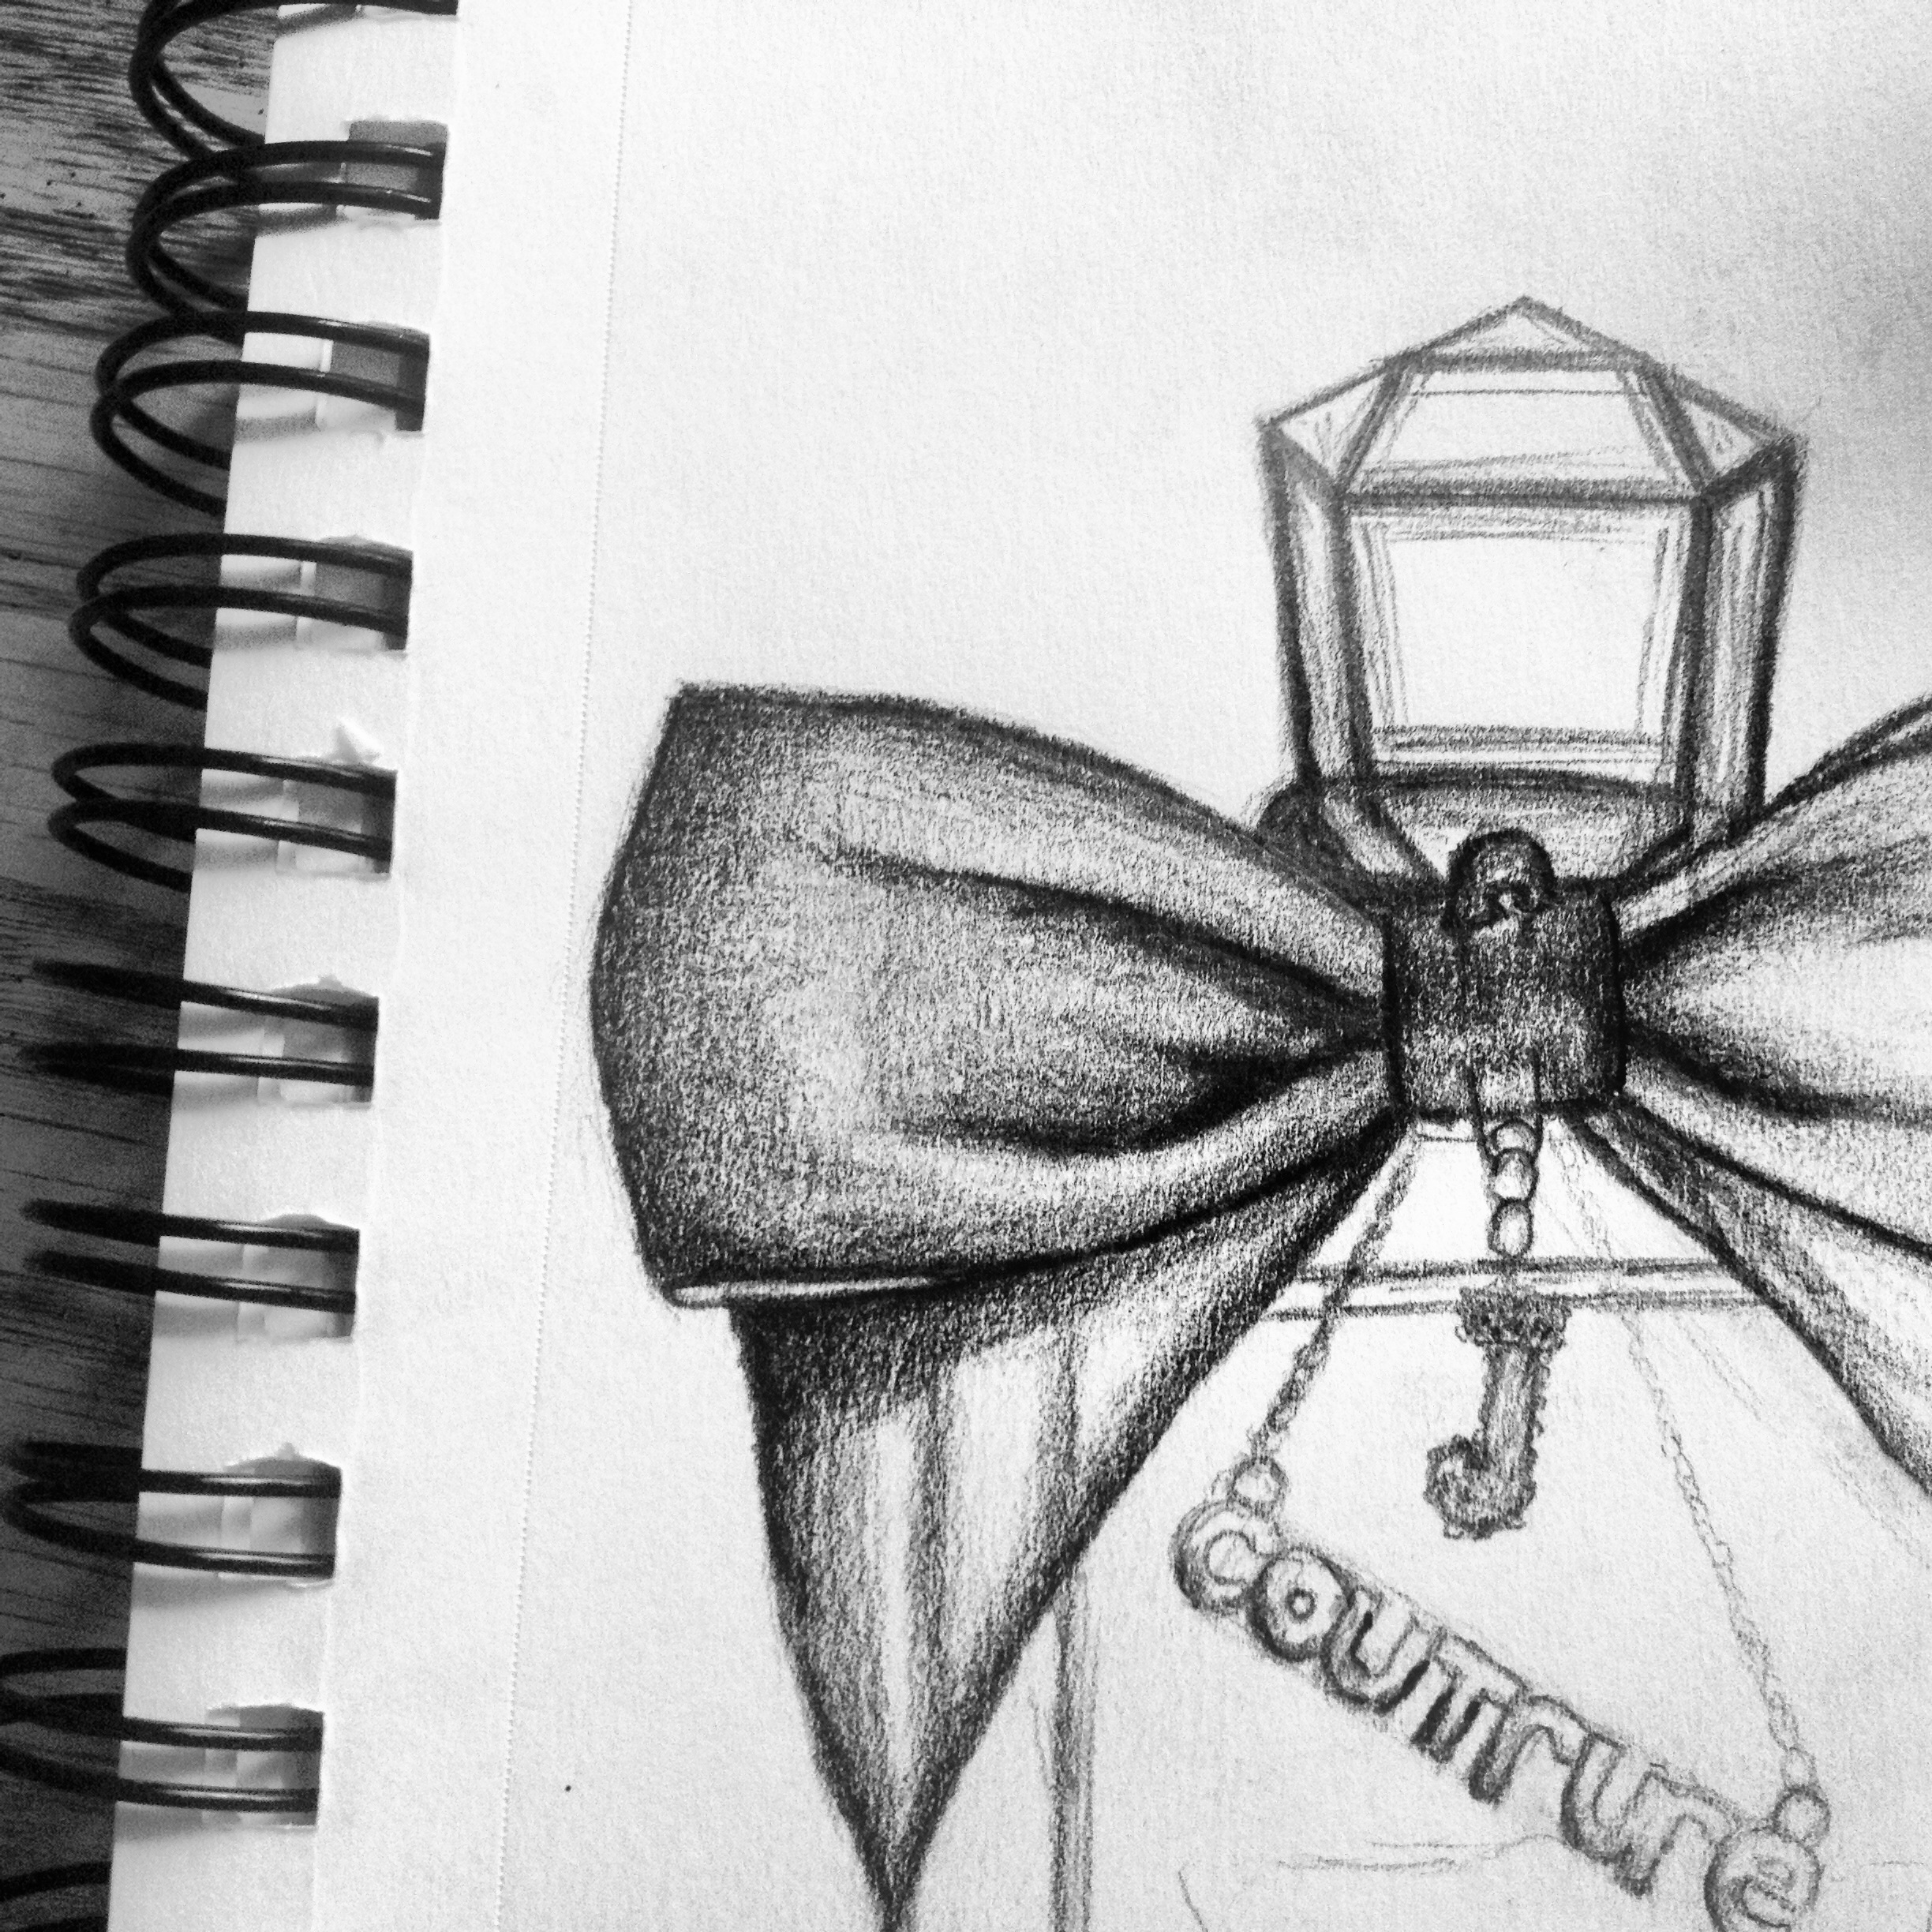 Sketching my favorite perfume. Viva la Juicy by Juicy Couture.